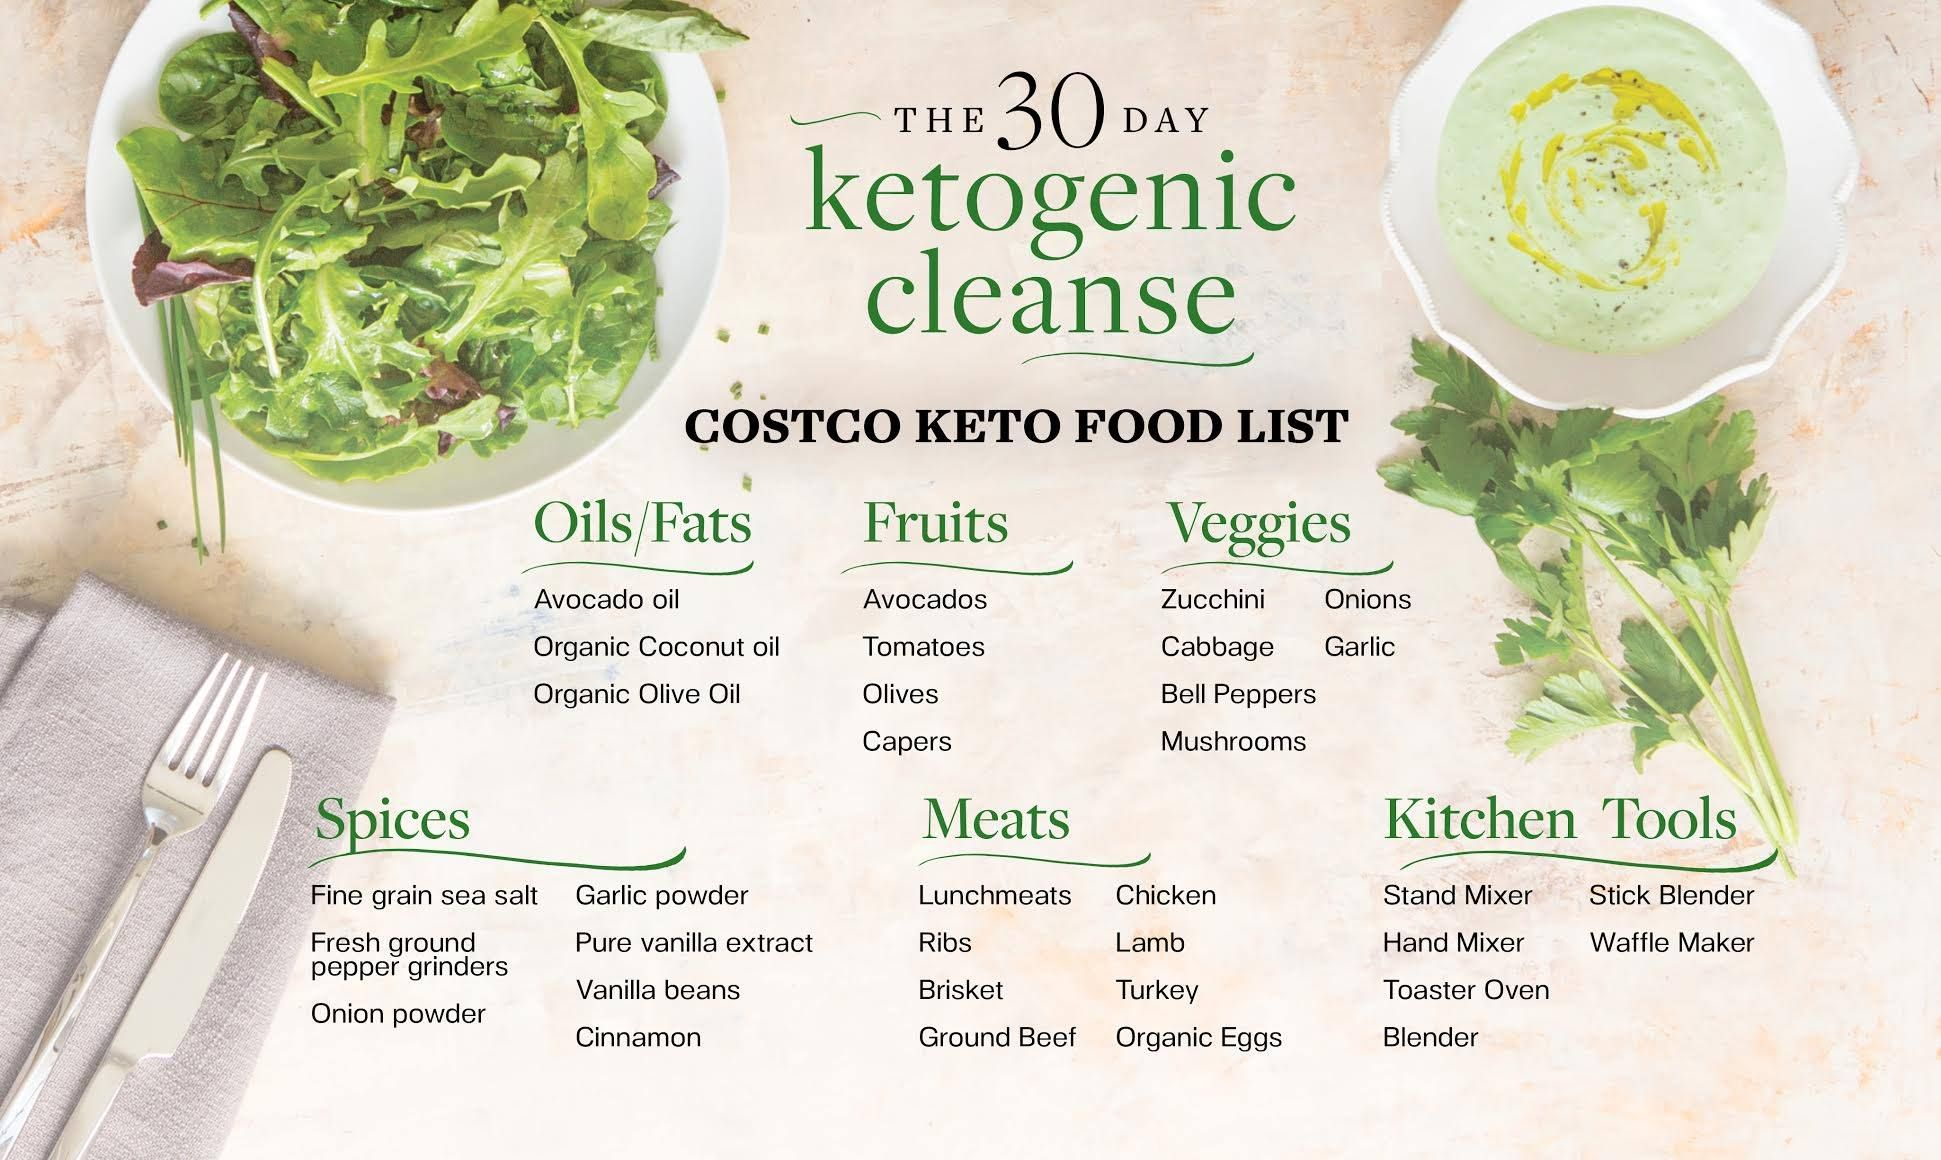 keto diet plan 30 days shopping list